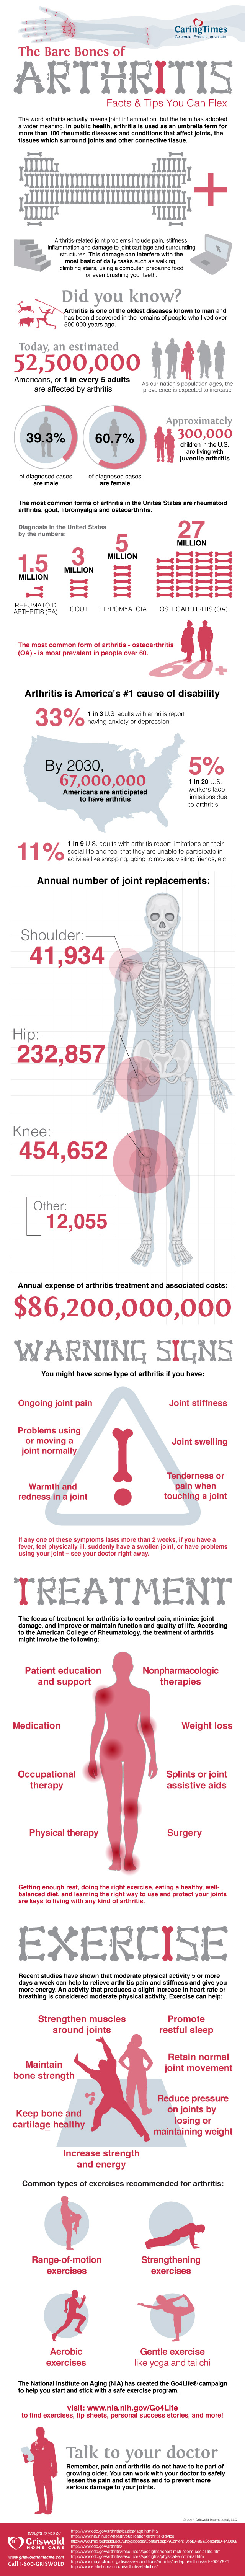 Arthritis Fact Sheet